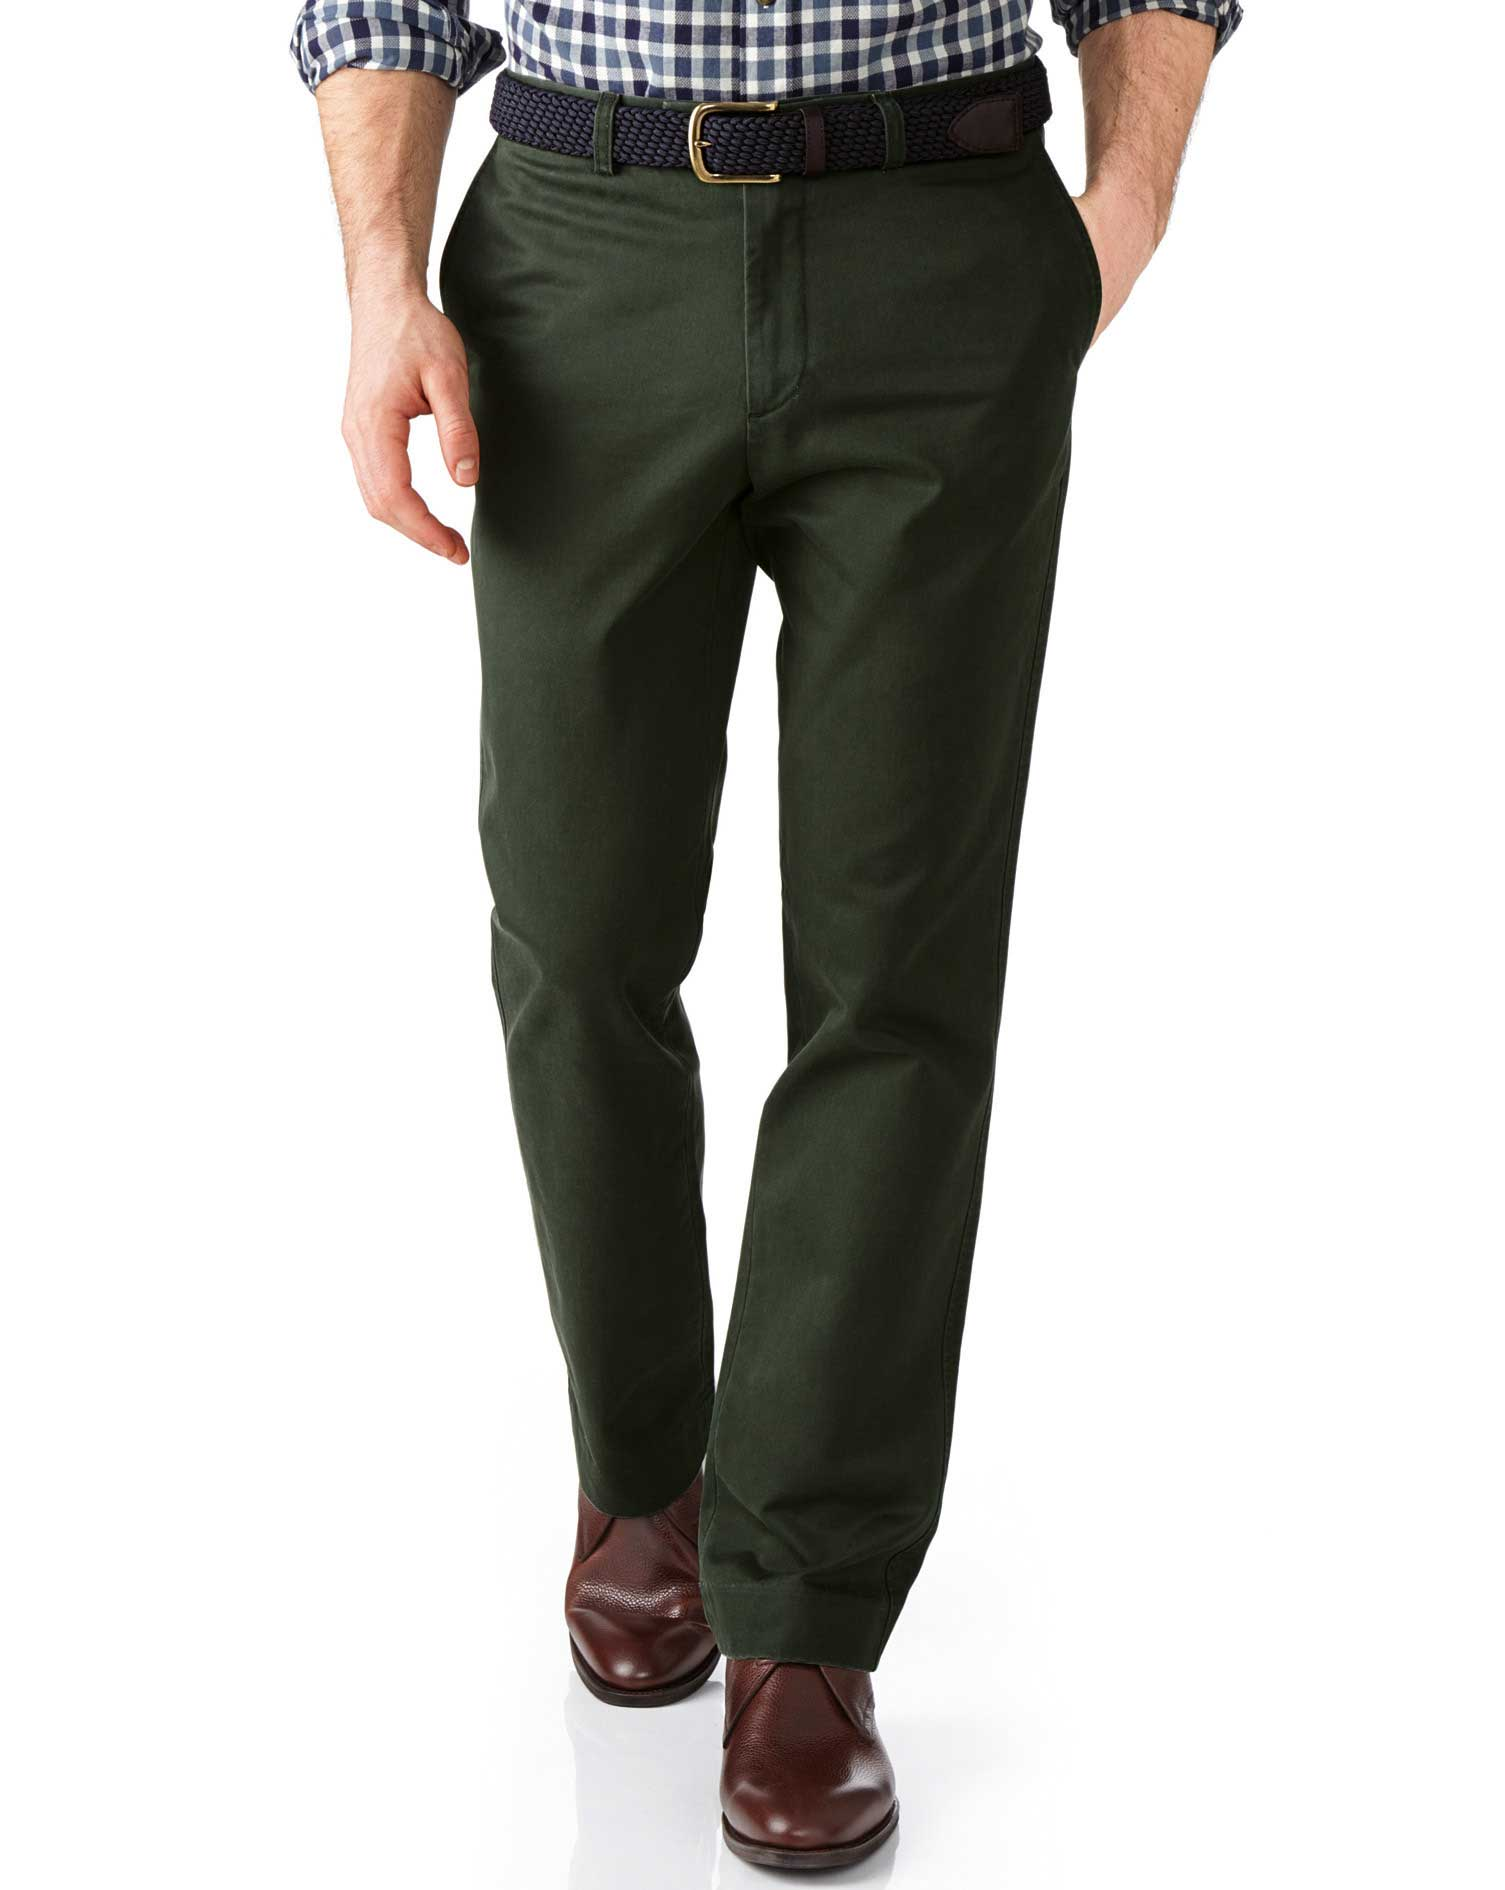 Dark Green Slim Fit Flat Front Weekend Cotton Chino Trousers Size W36 L34 by Charles Tyrwhitt